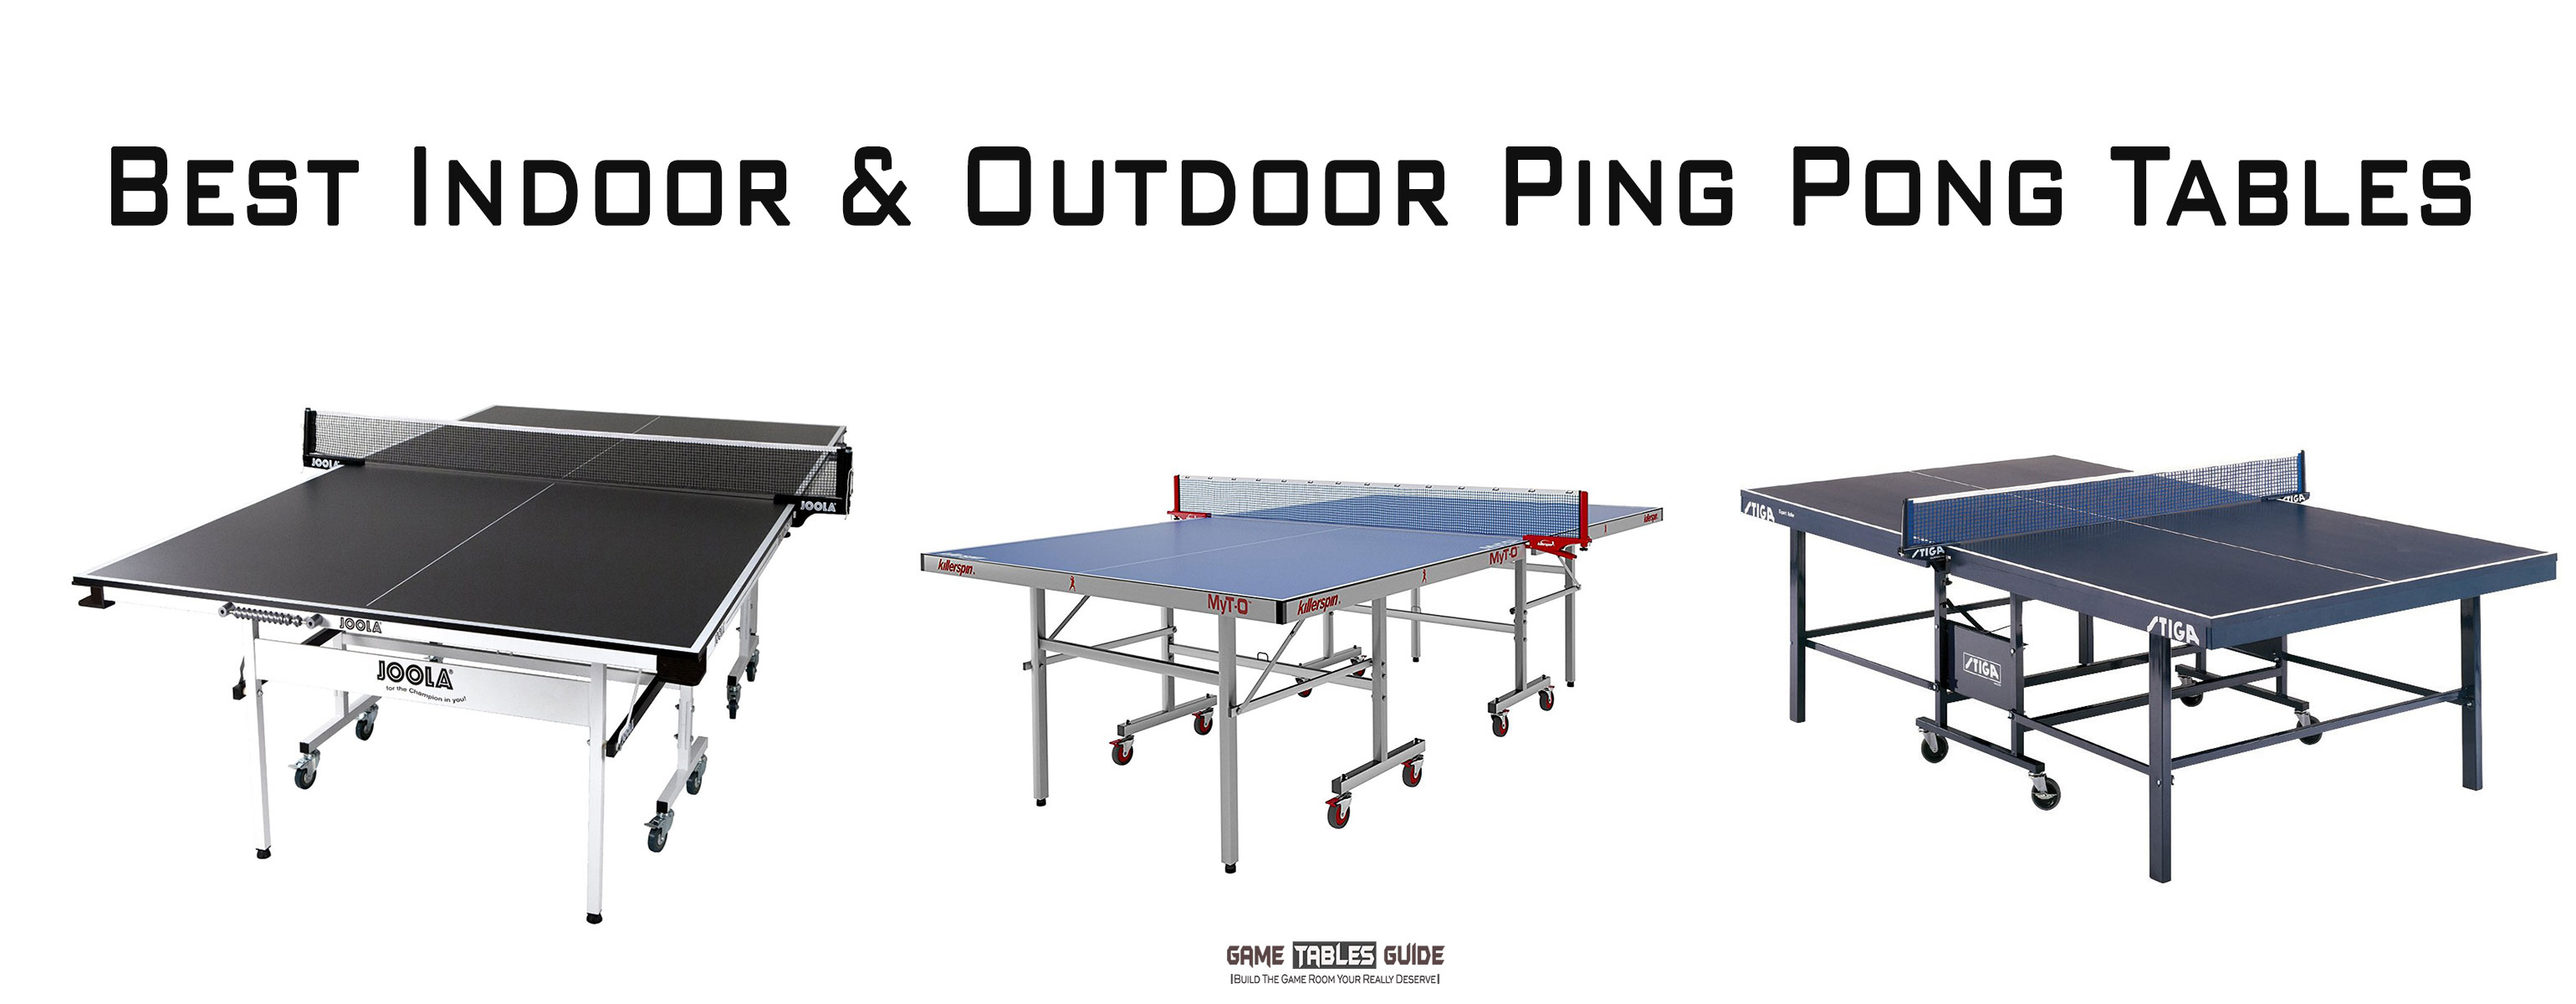 best ping pong tables in 2018 indoor outdoor tables reviews. Black Bedroom Furniture Sets. Home Design Ideas